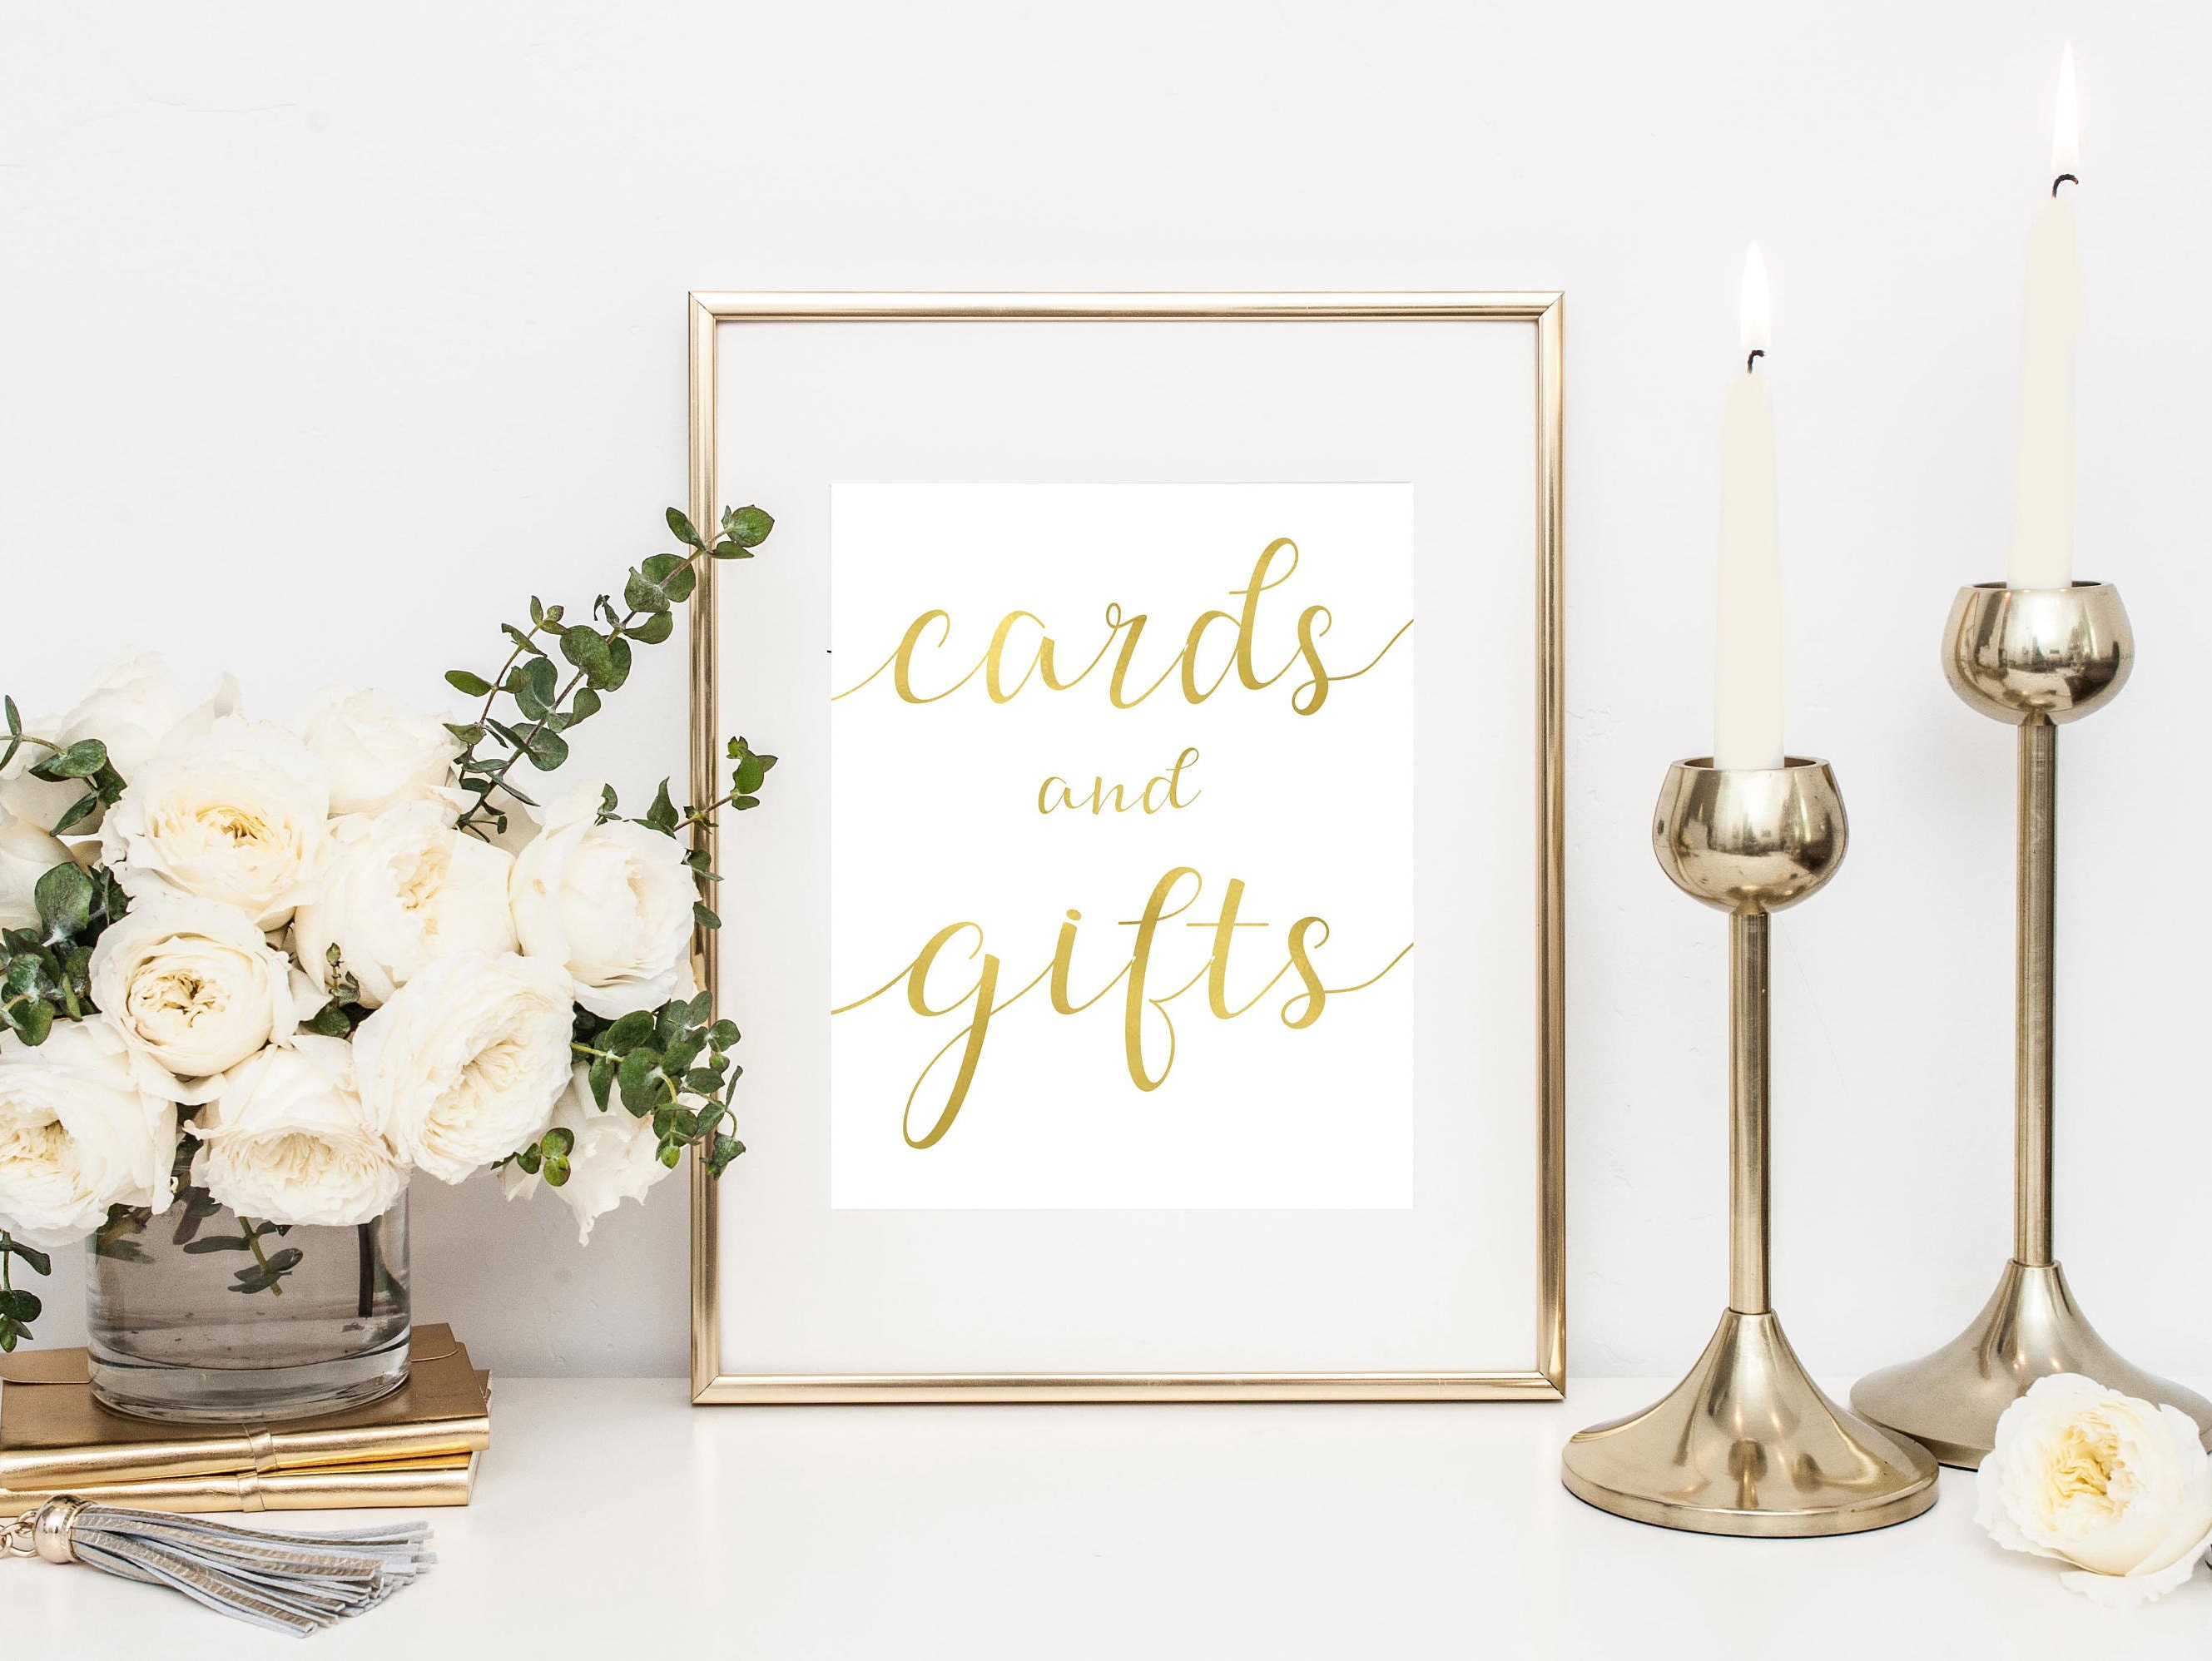 Wedding Gift Cards Online: Cards And Gifts Sign Gift Table Sign Printable Wedding Sign